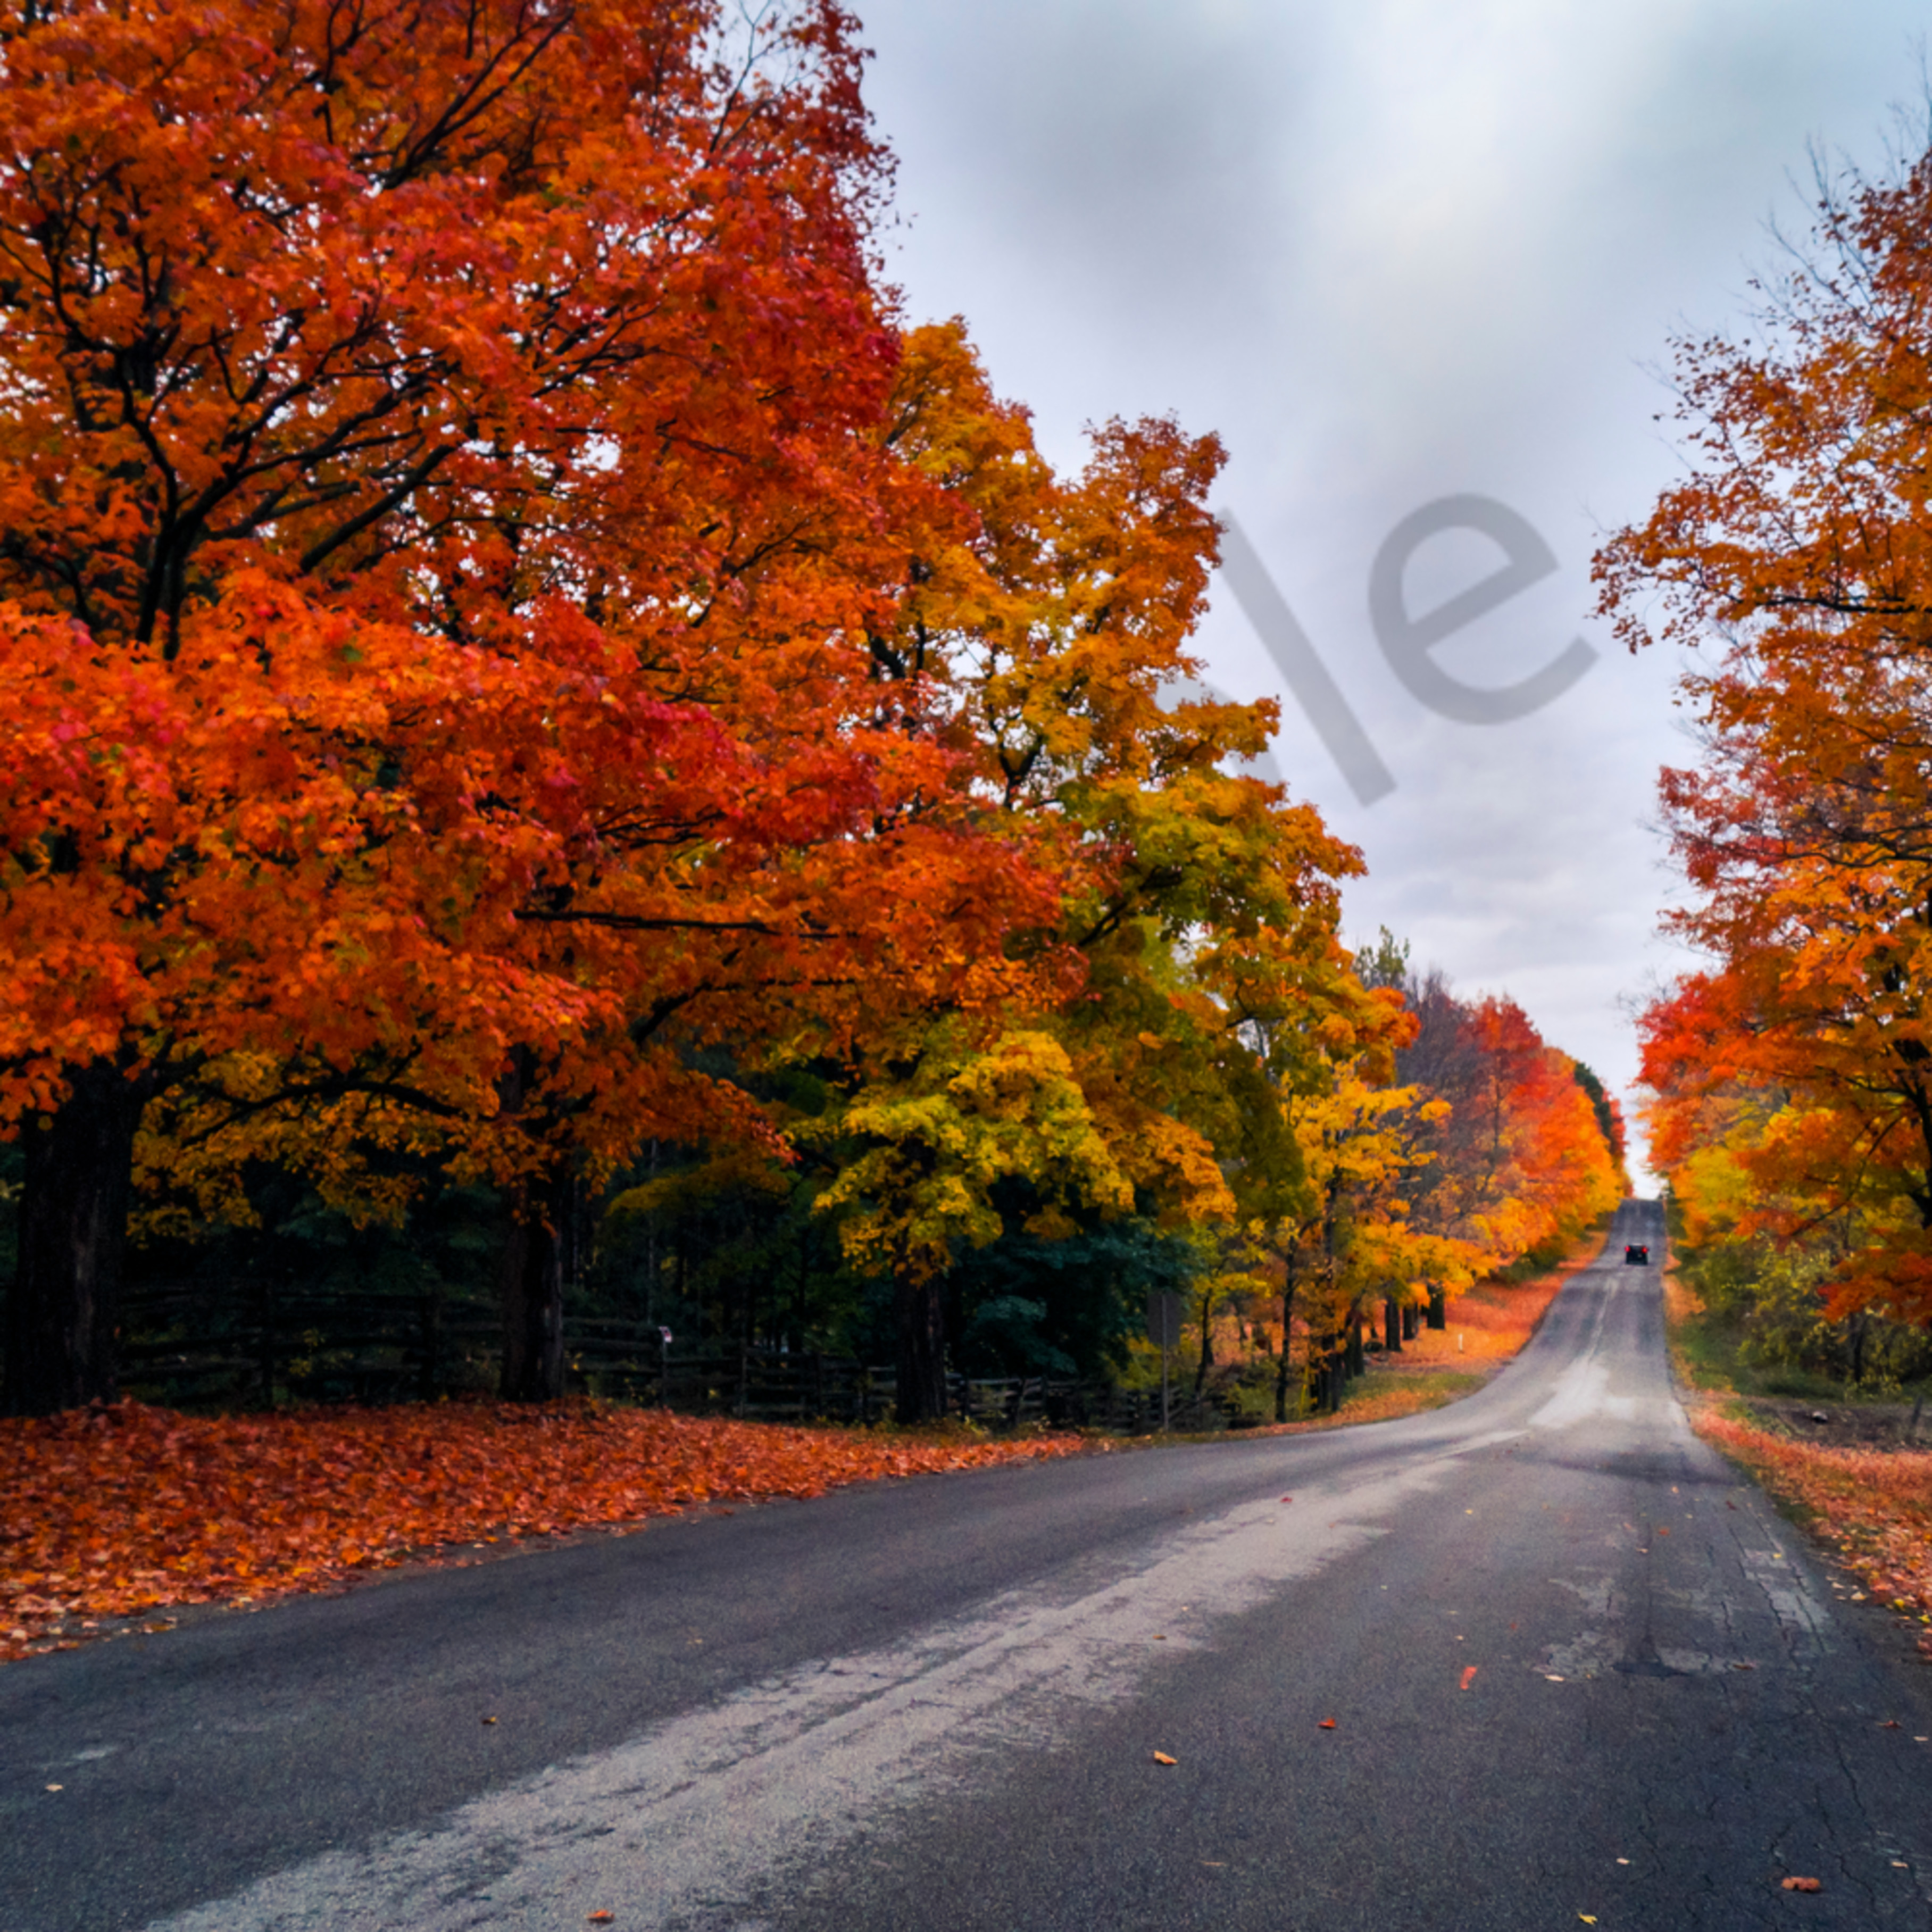 Country road in autumn fzmeoc